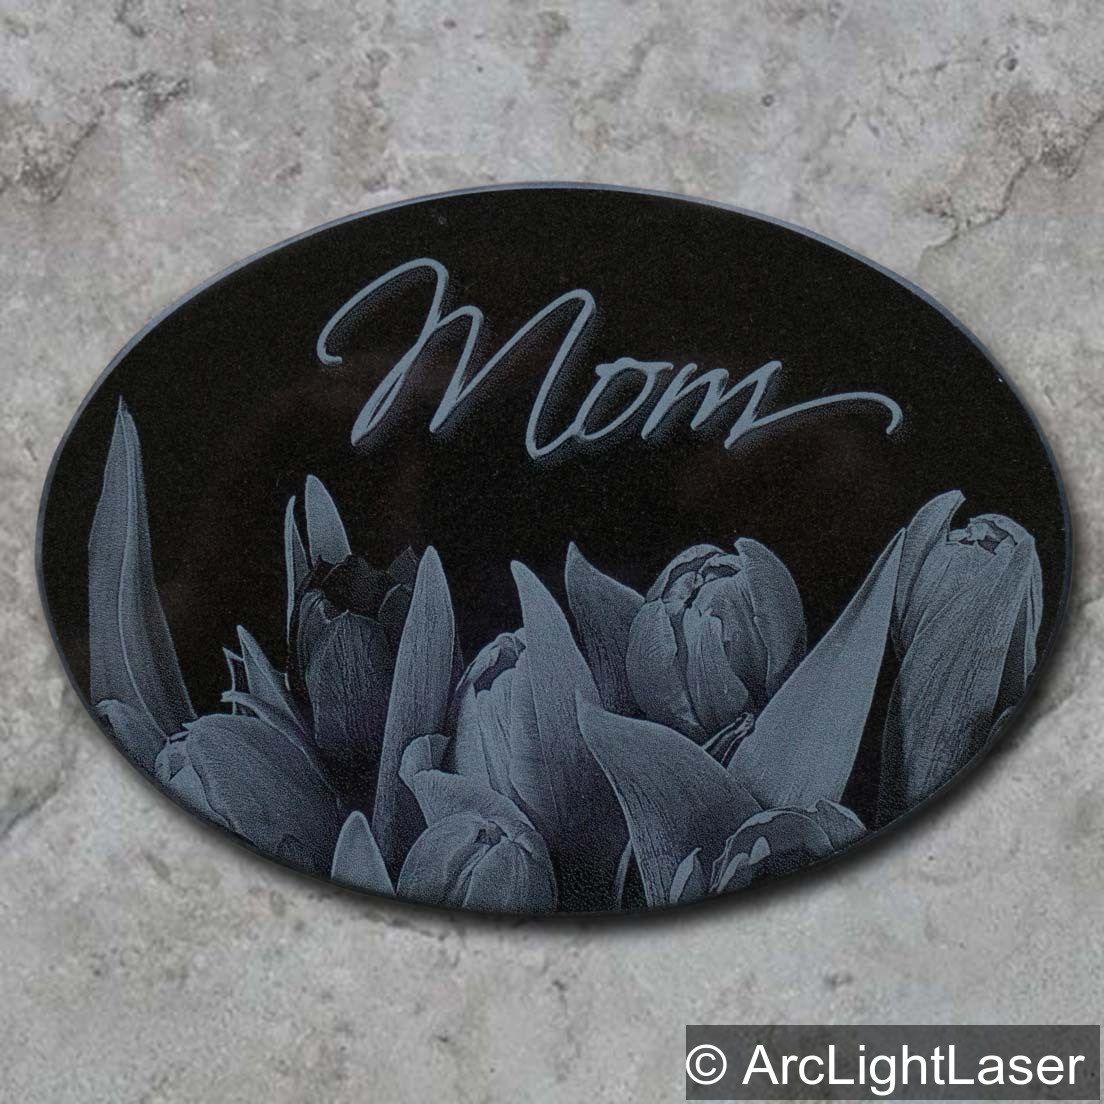 A Beautifully Engraved Black Marble Plaque For Your Mom Custom Designs Available We Have So Many Different Shapes And Laser Engraving Pet Marker Black Marble